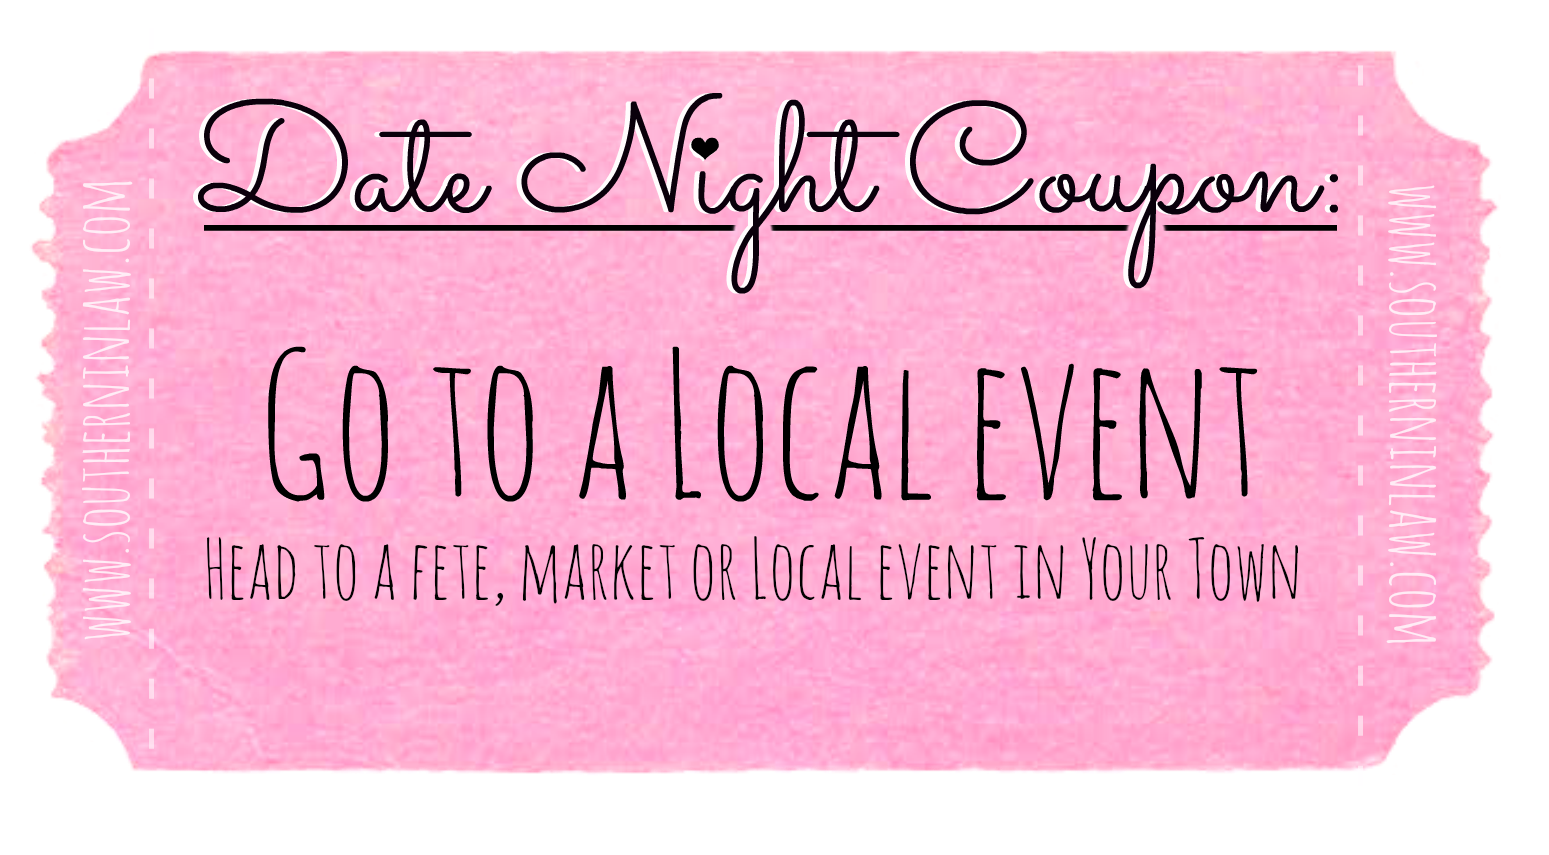 Affordable Date Ideas - Date Night Coupons - Go to a Local Event